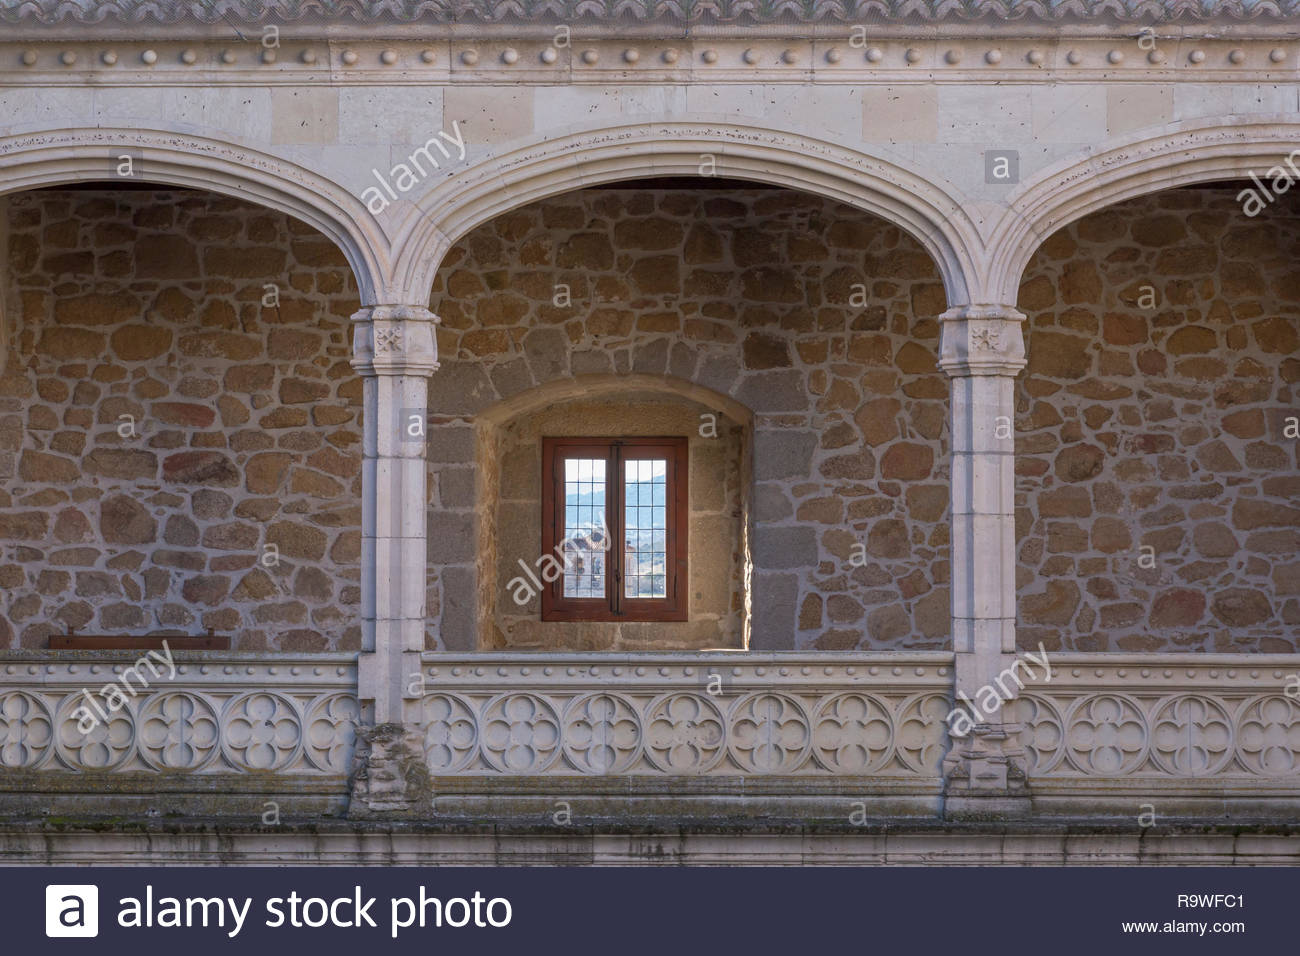 In Manzanares el Real, Spain Stock Photo